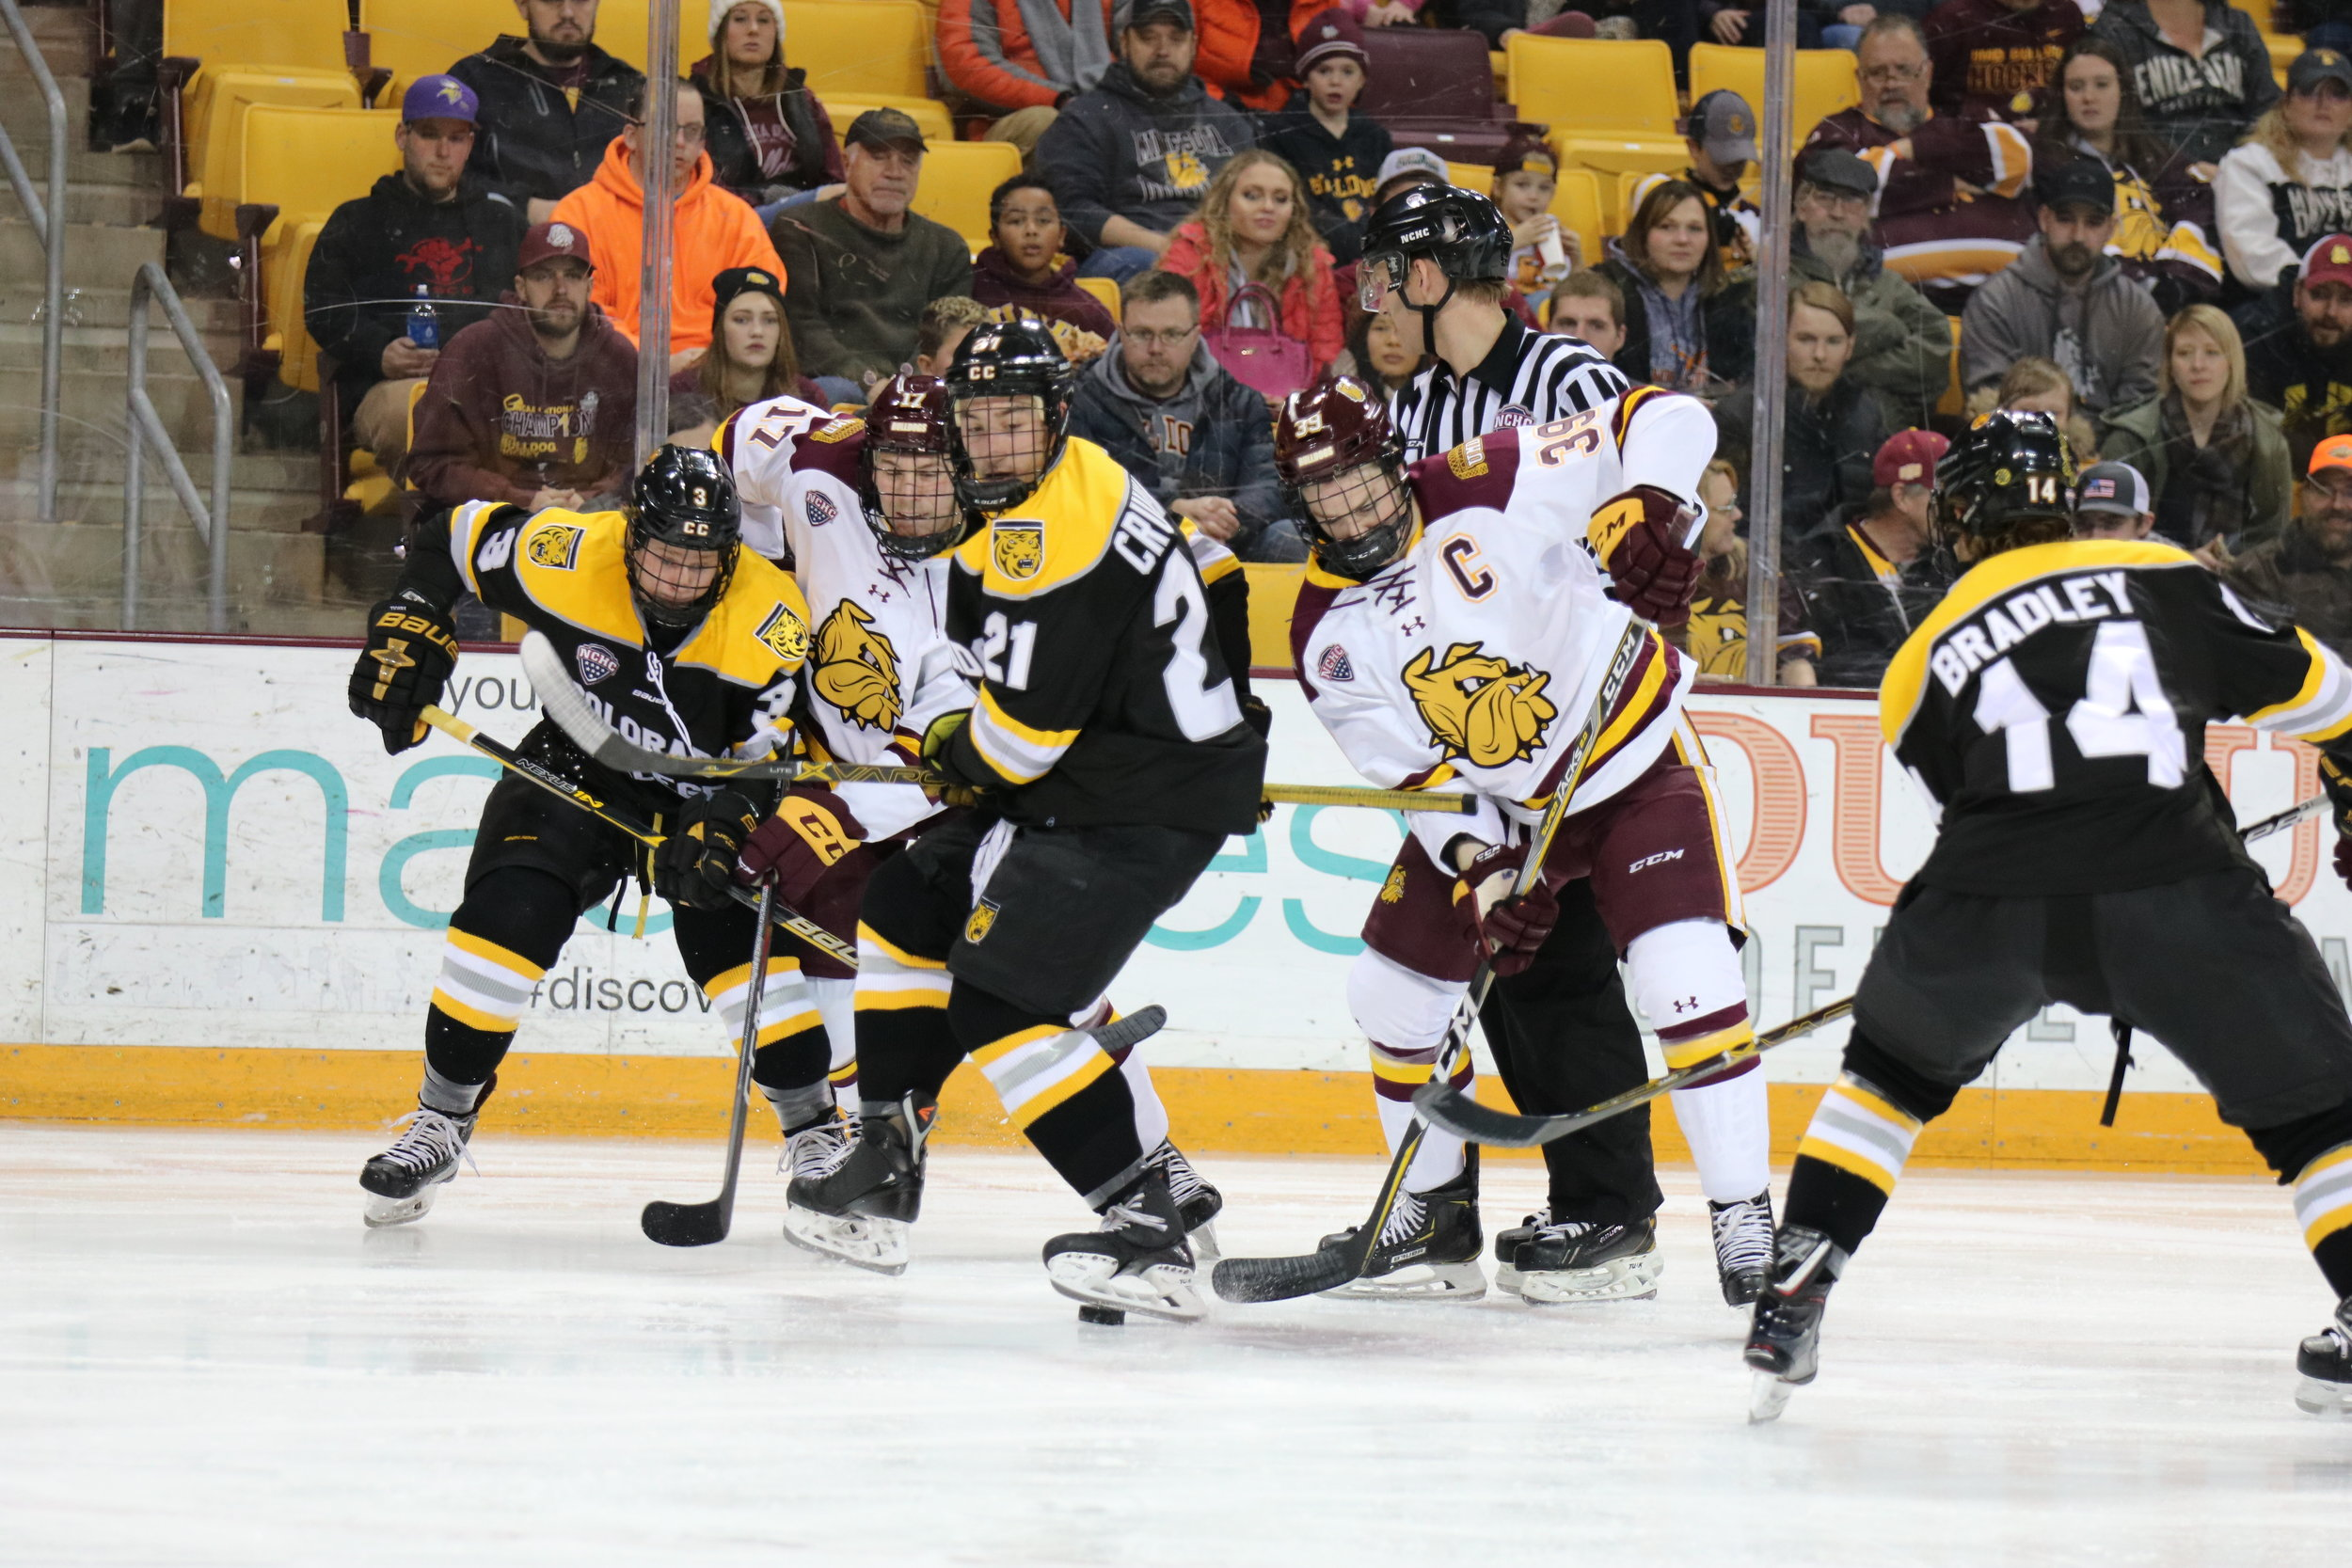 Minnesota Duluth players chase the puck from Colorado College players. Photo by Drew Smith